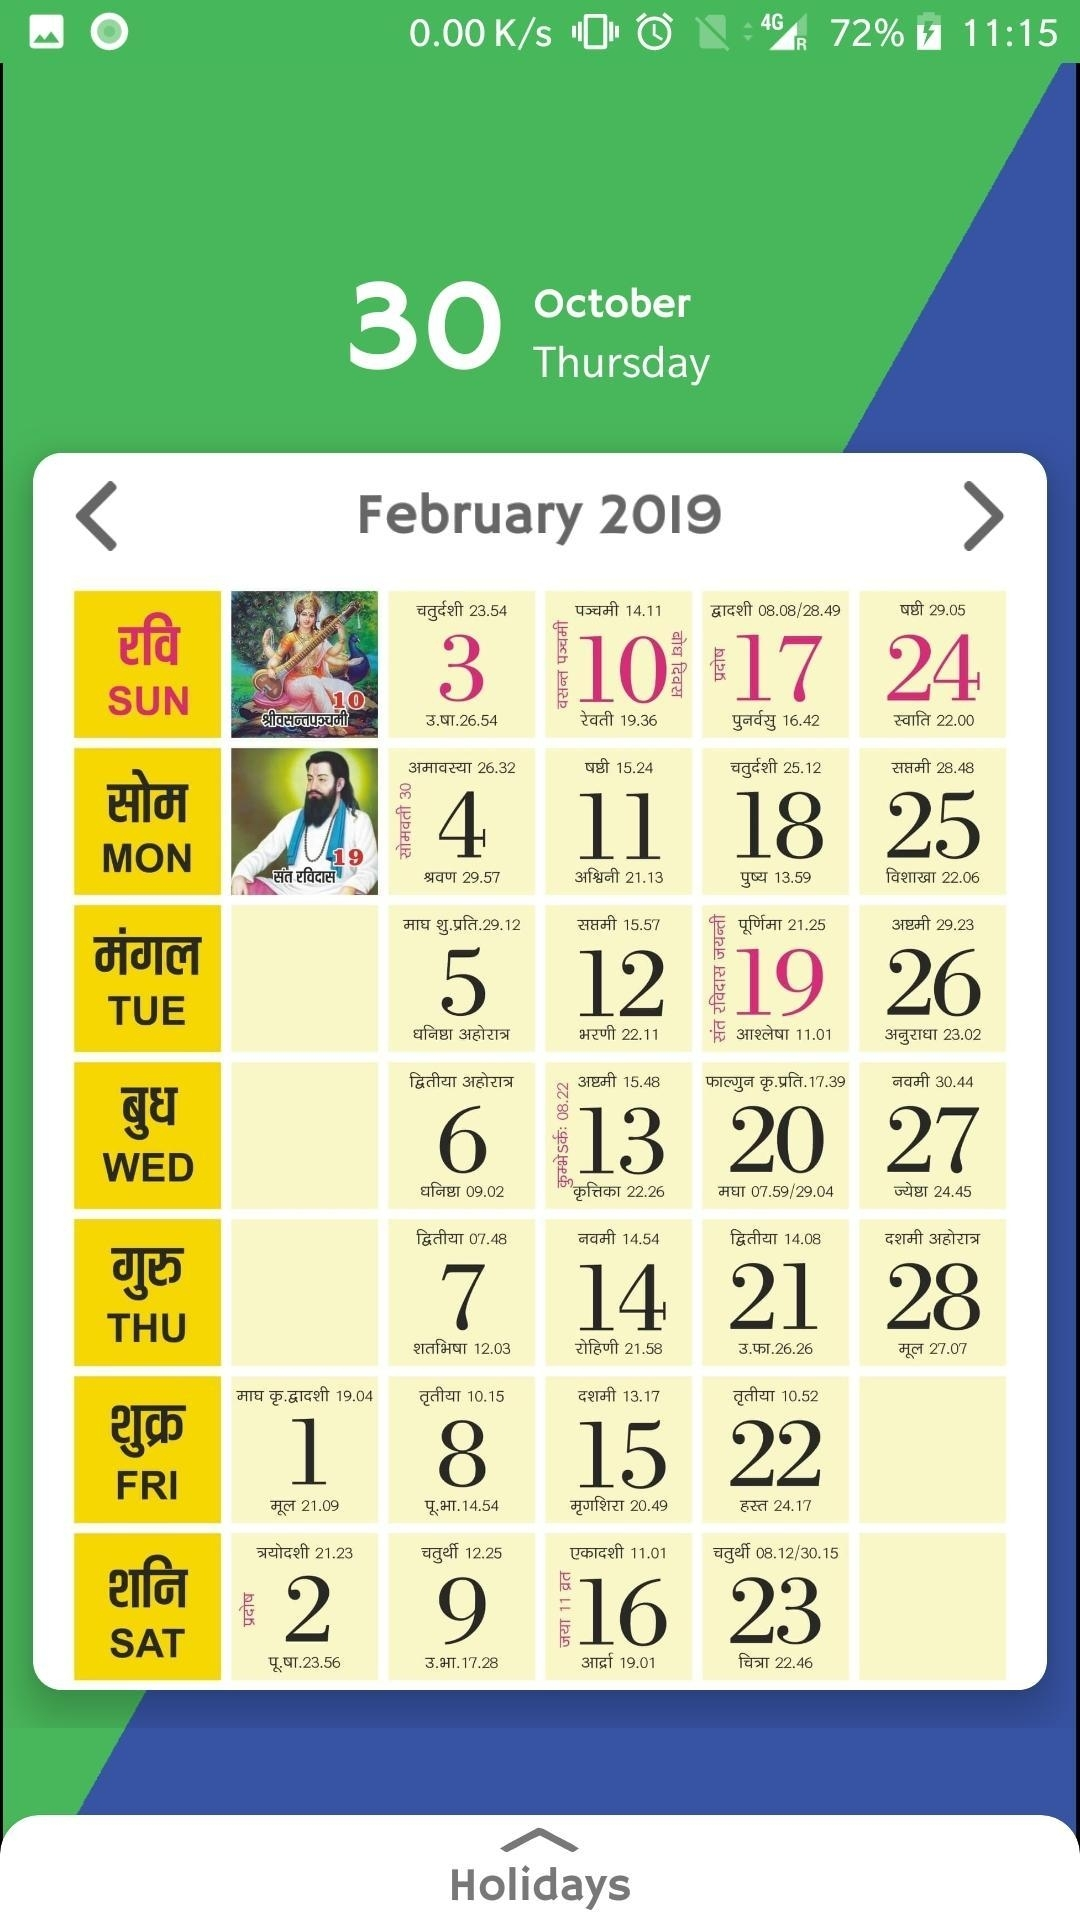 Hindi Calendar 2019 : Hindi Panchang 2019 For Android - Apk